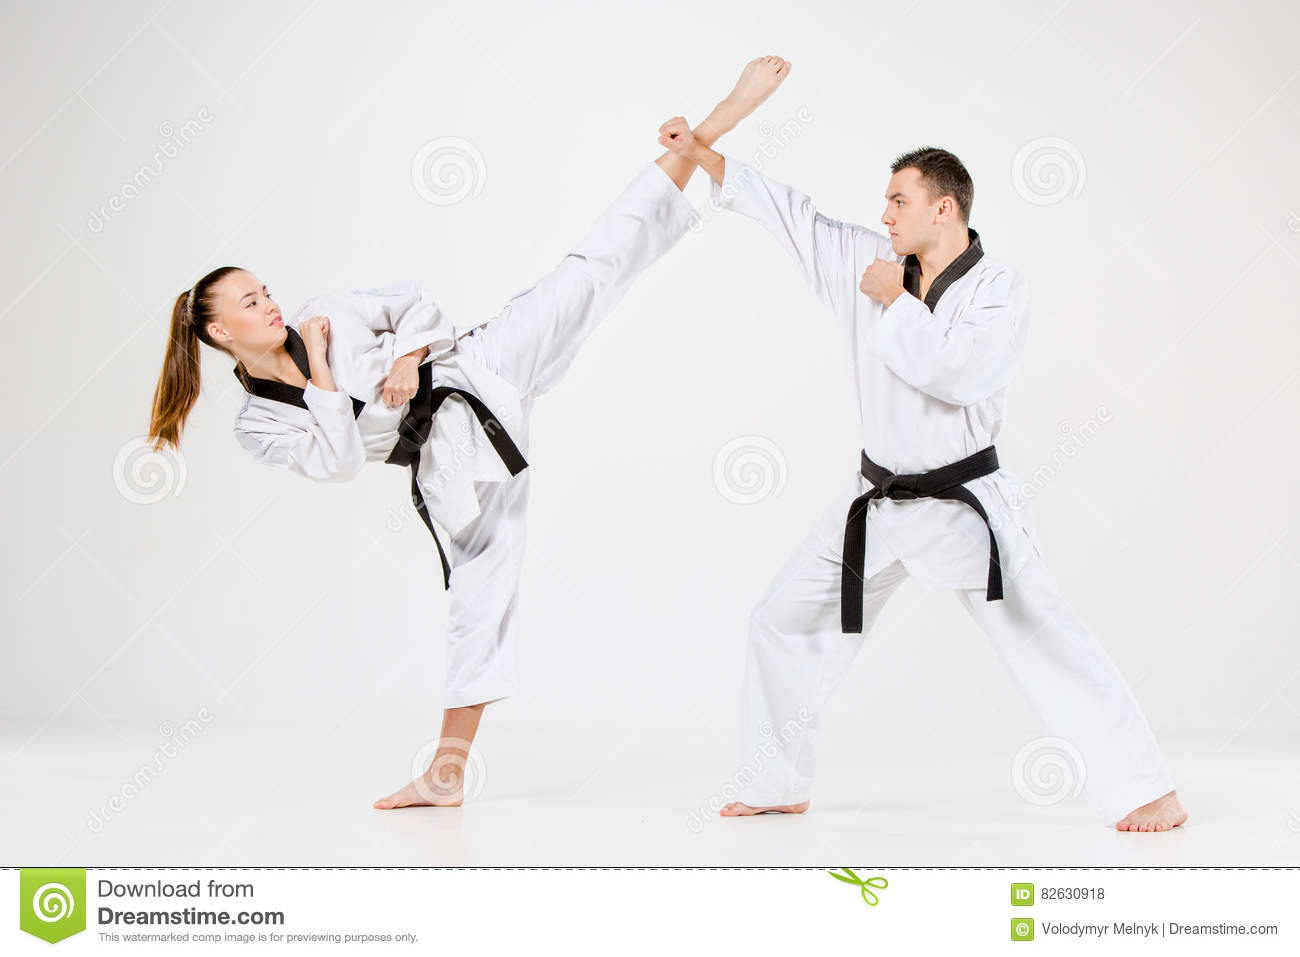 The Karate Girl And Boy With Black Belts Stock Photo - Image of male